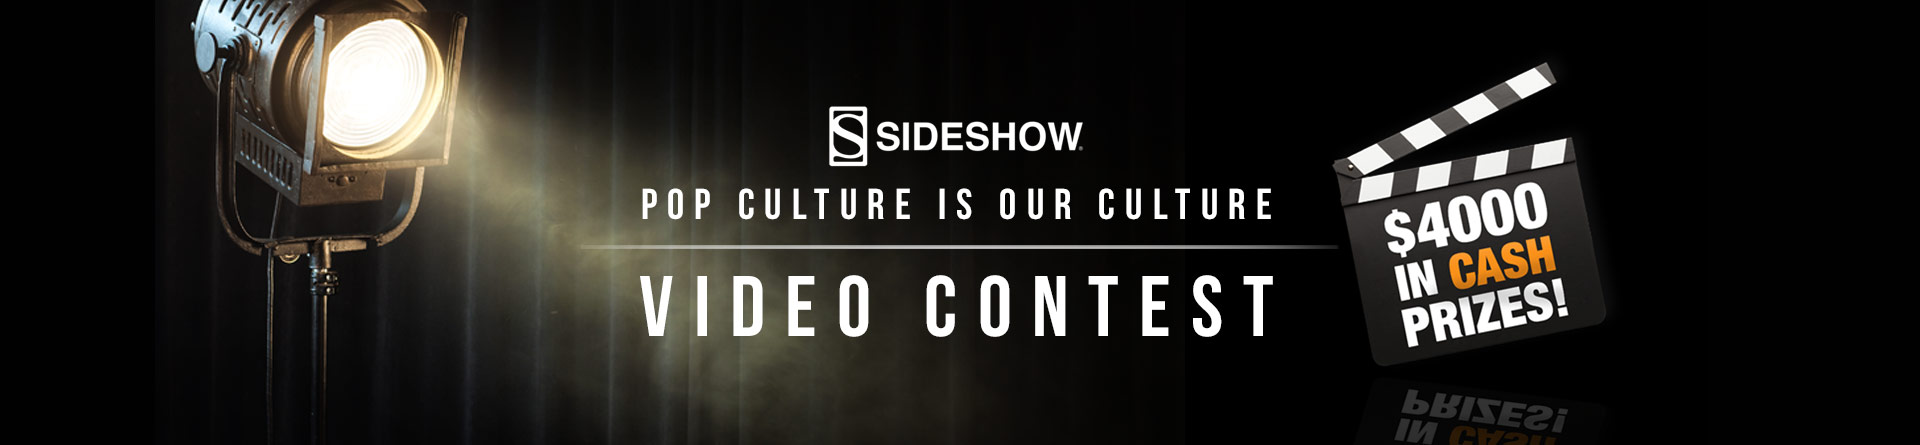 Pop Culture is our Culture - Video Contest